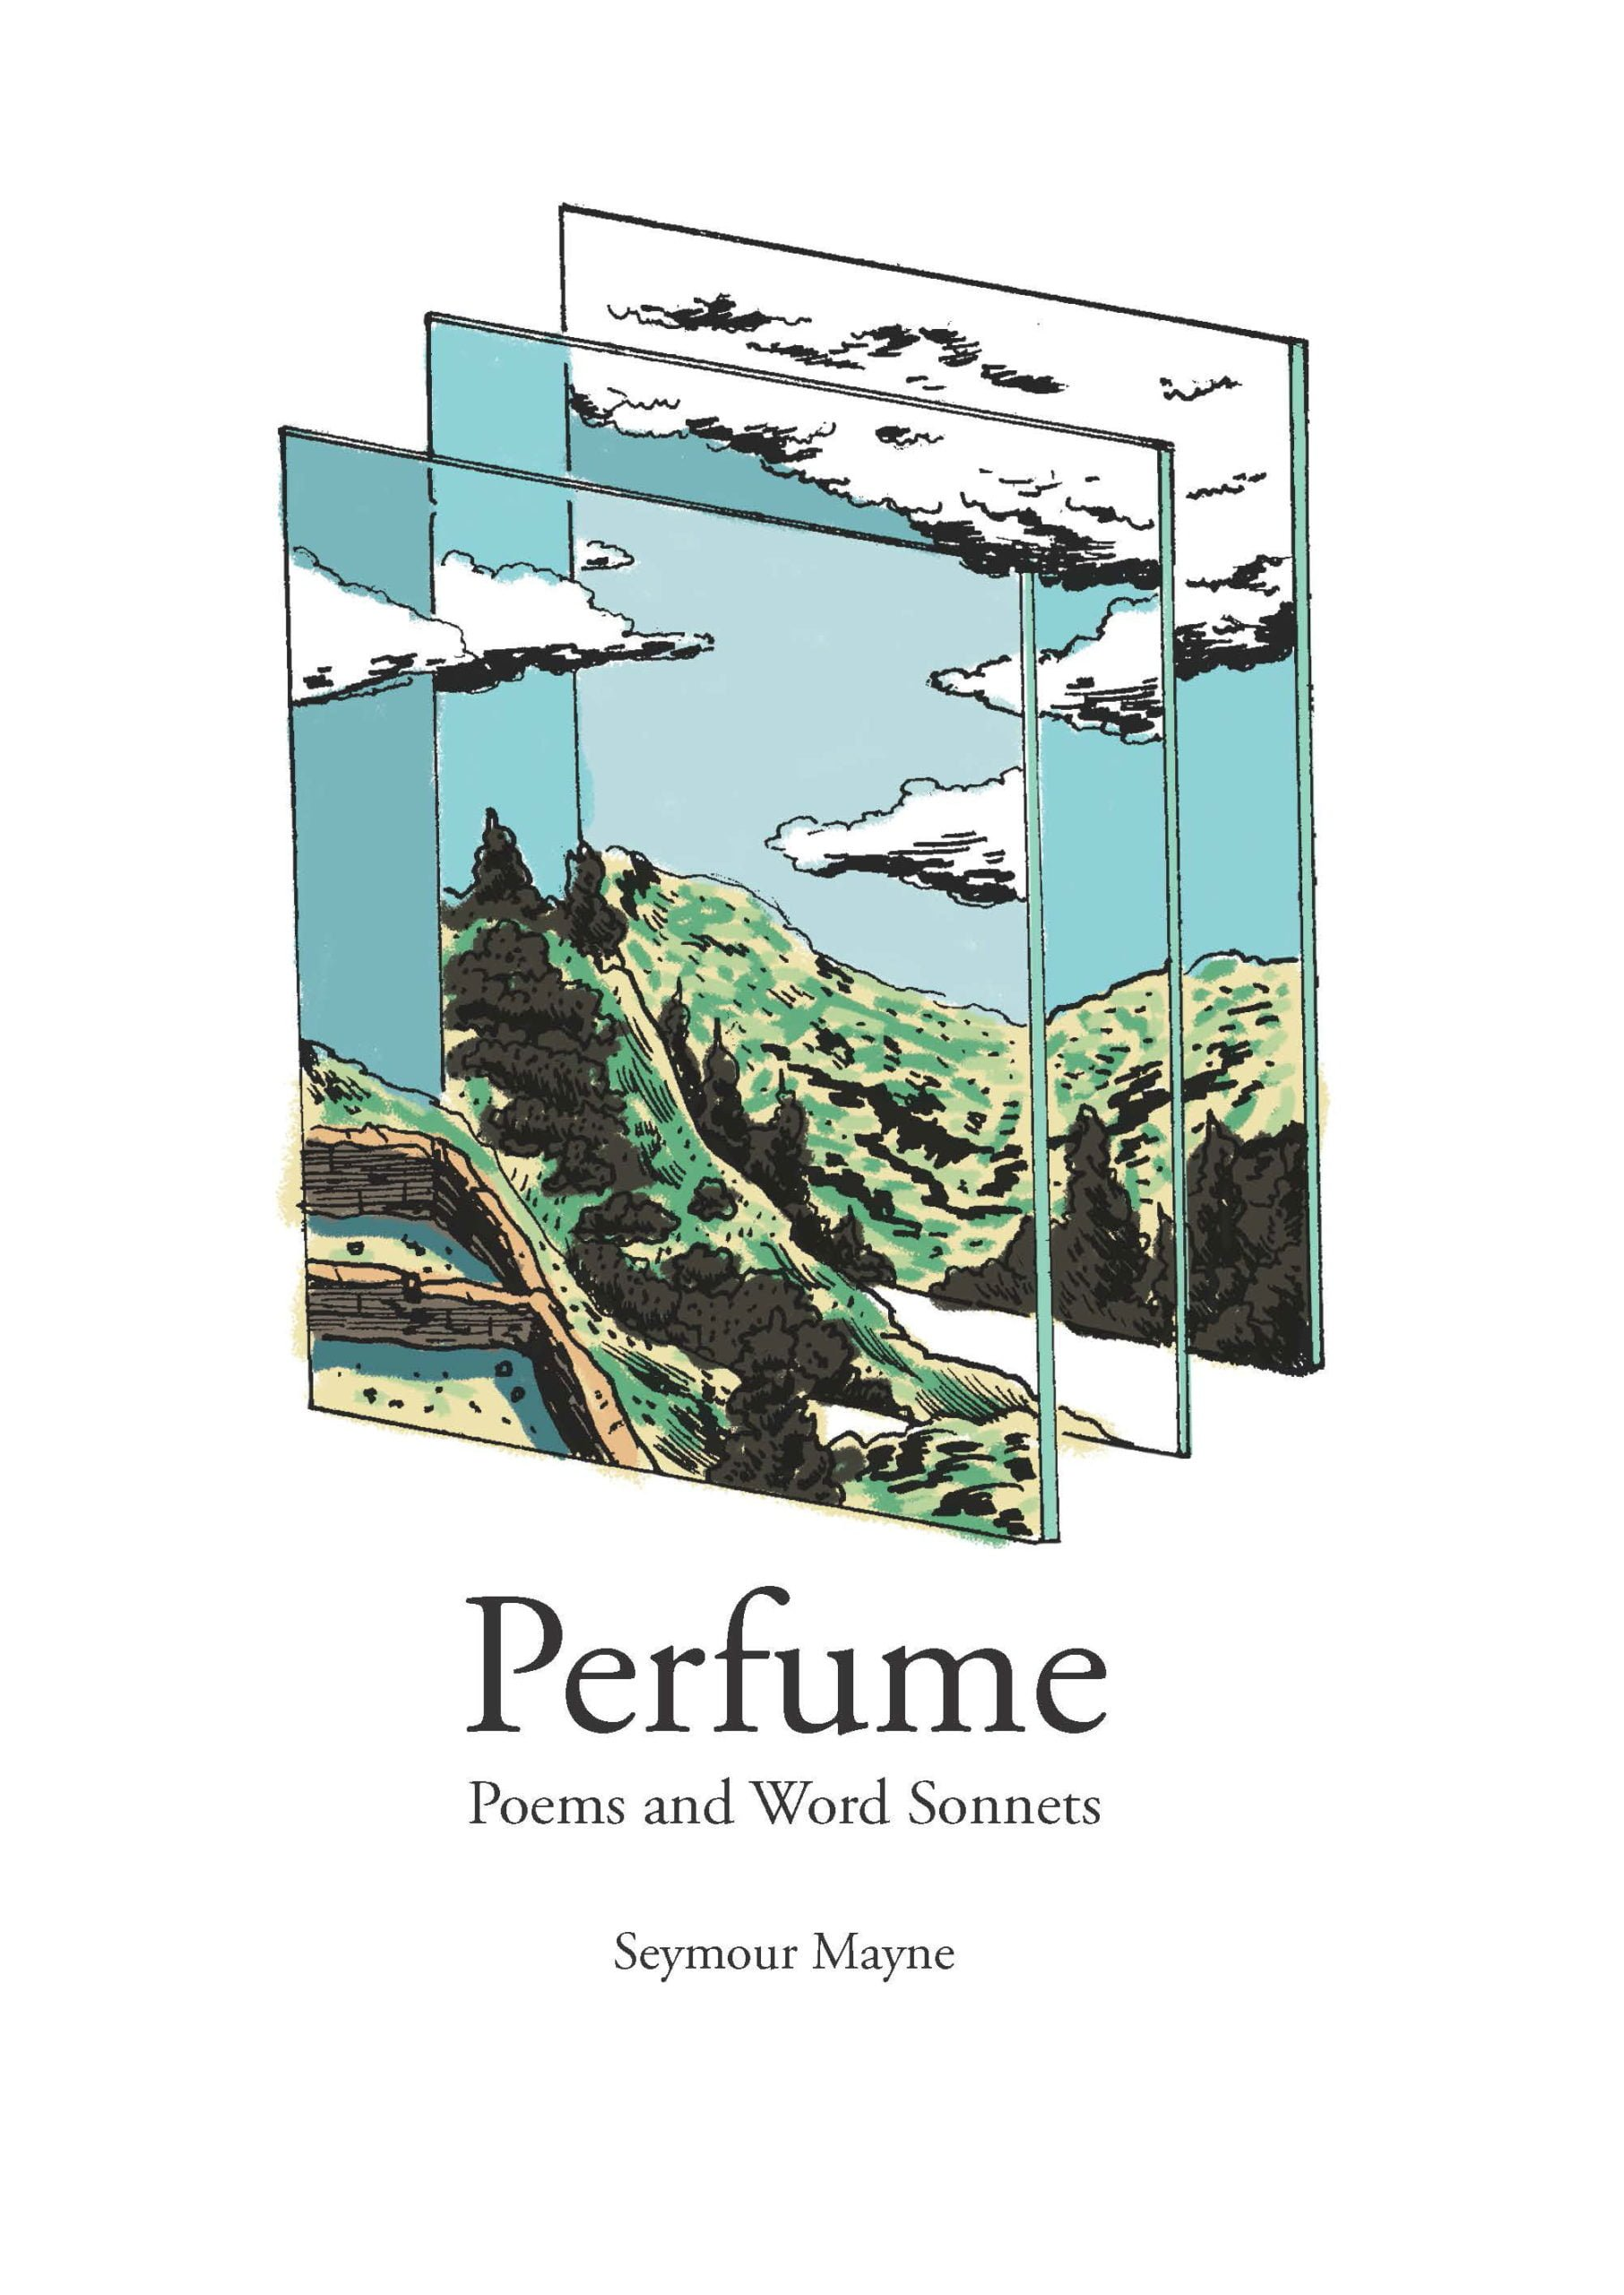 purfume-cover